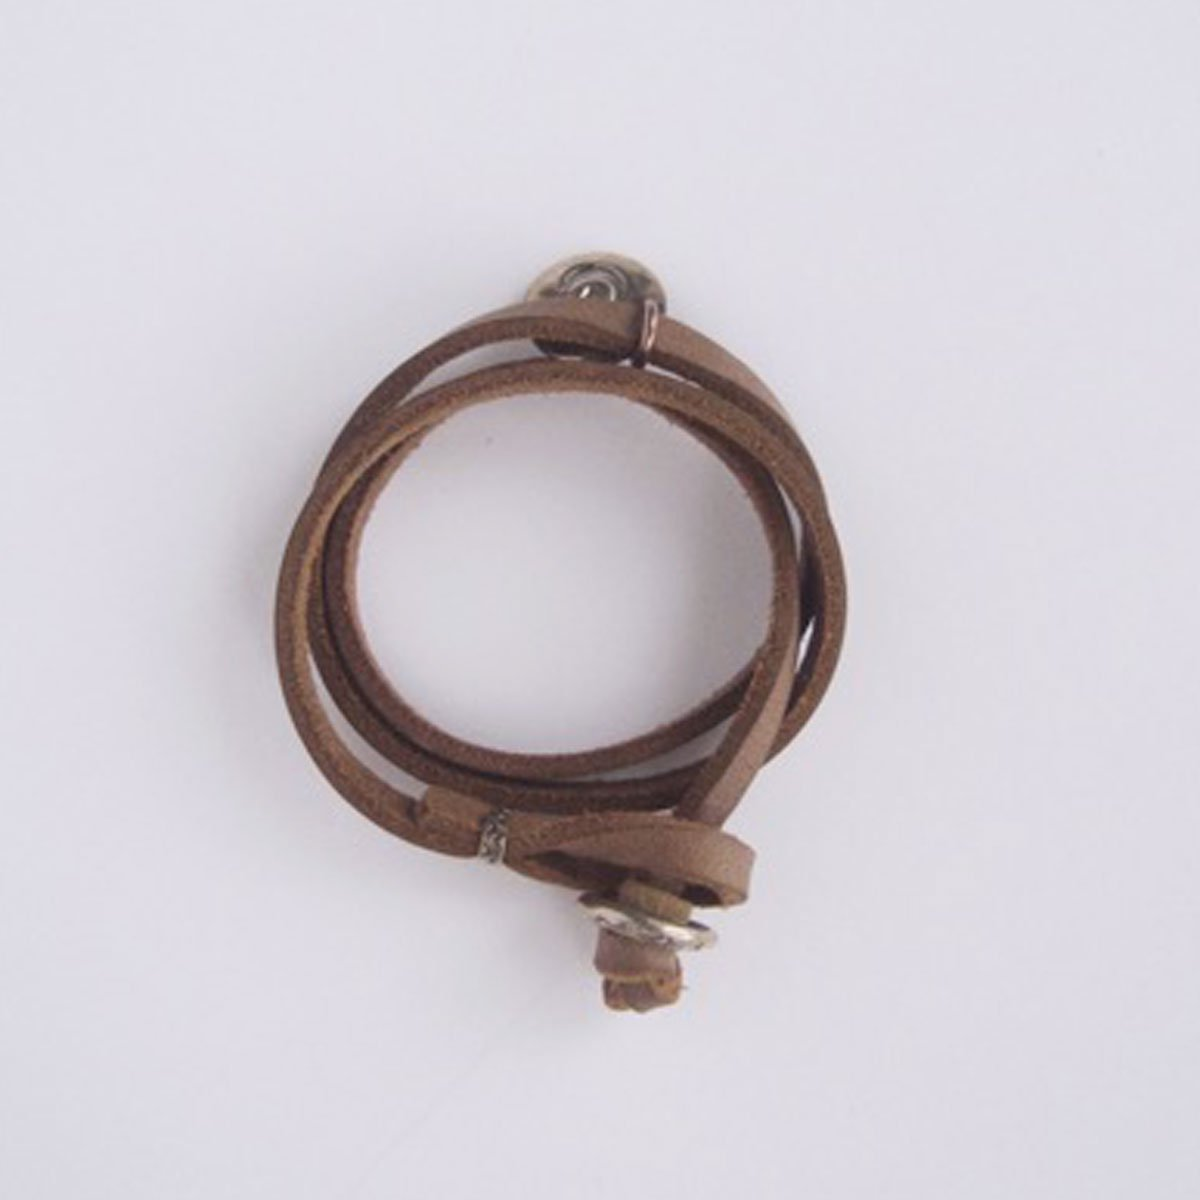 MOTO CONTEMPORARY NATIVE 3連LEATHER BRACELET (NATURAL)2